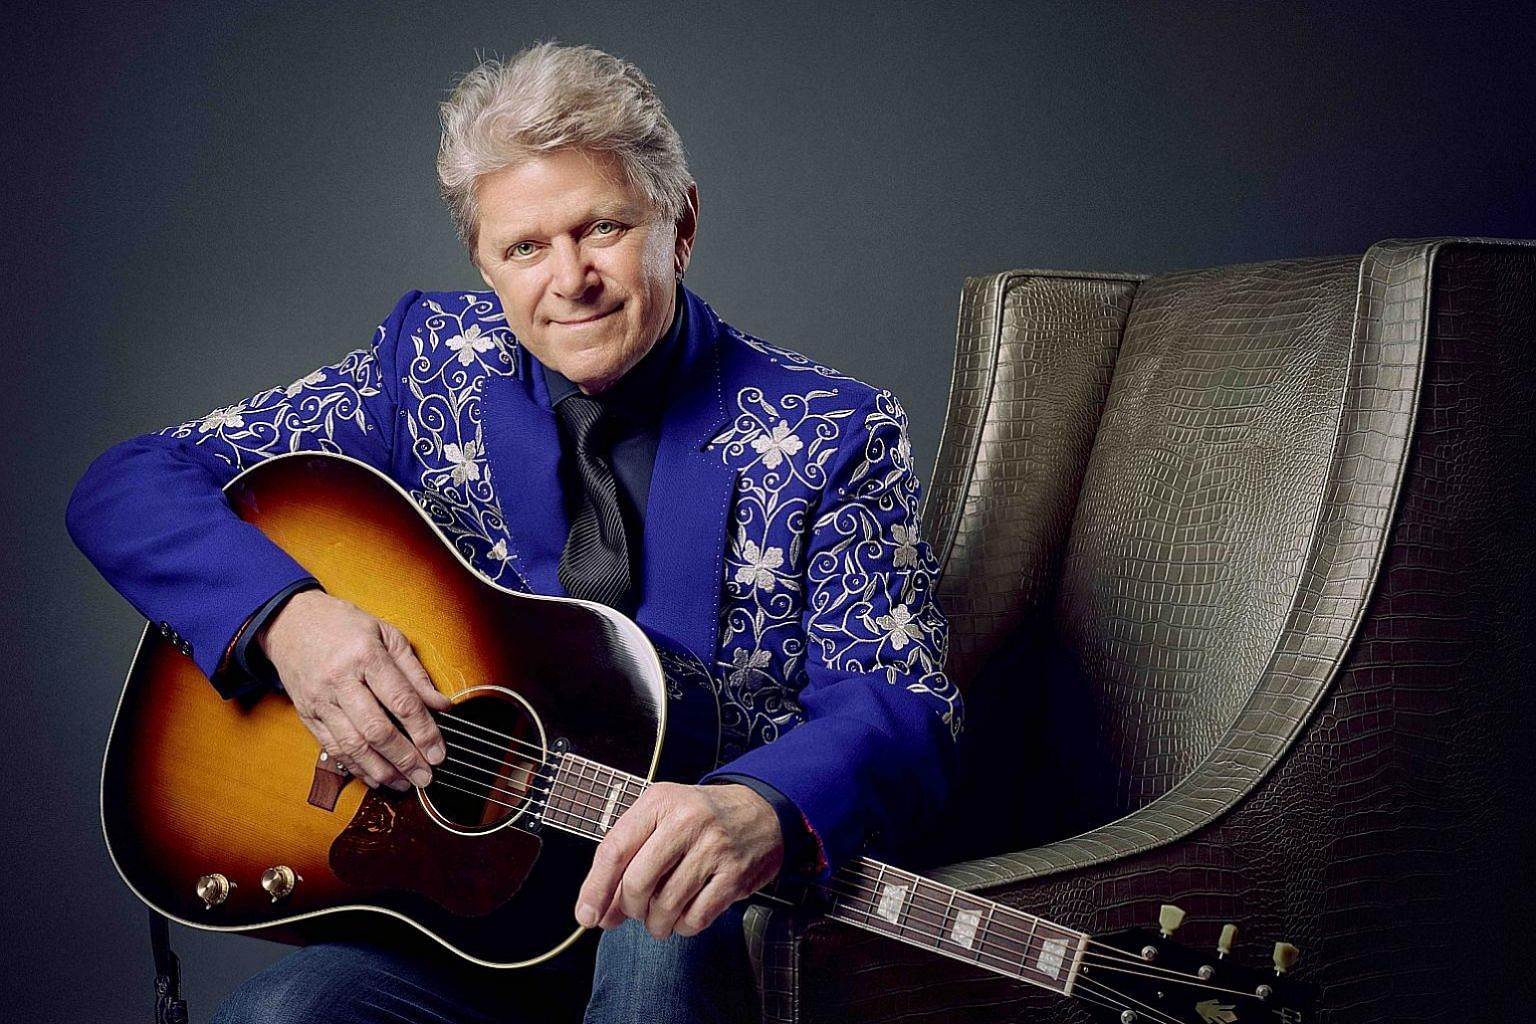 Singer Peter Cetera has performed in Singapore several times.